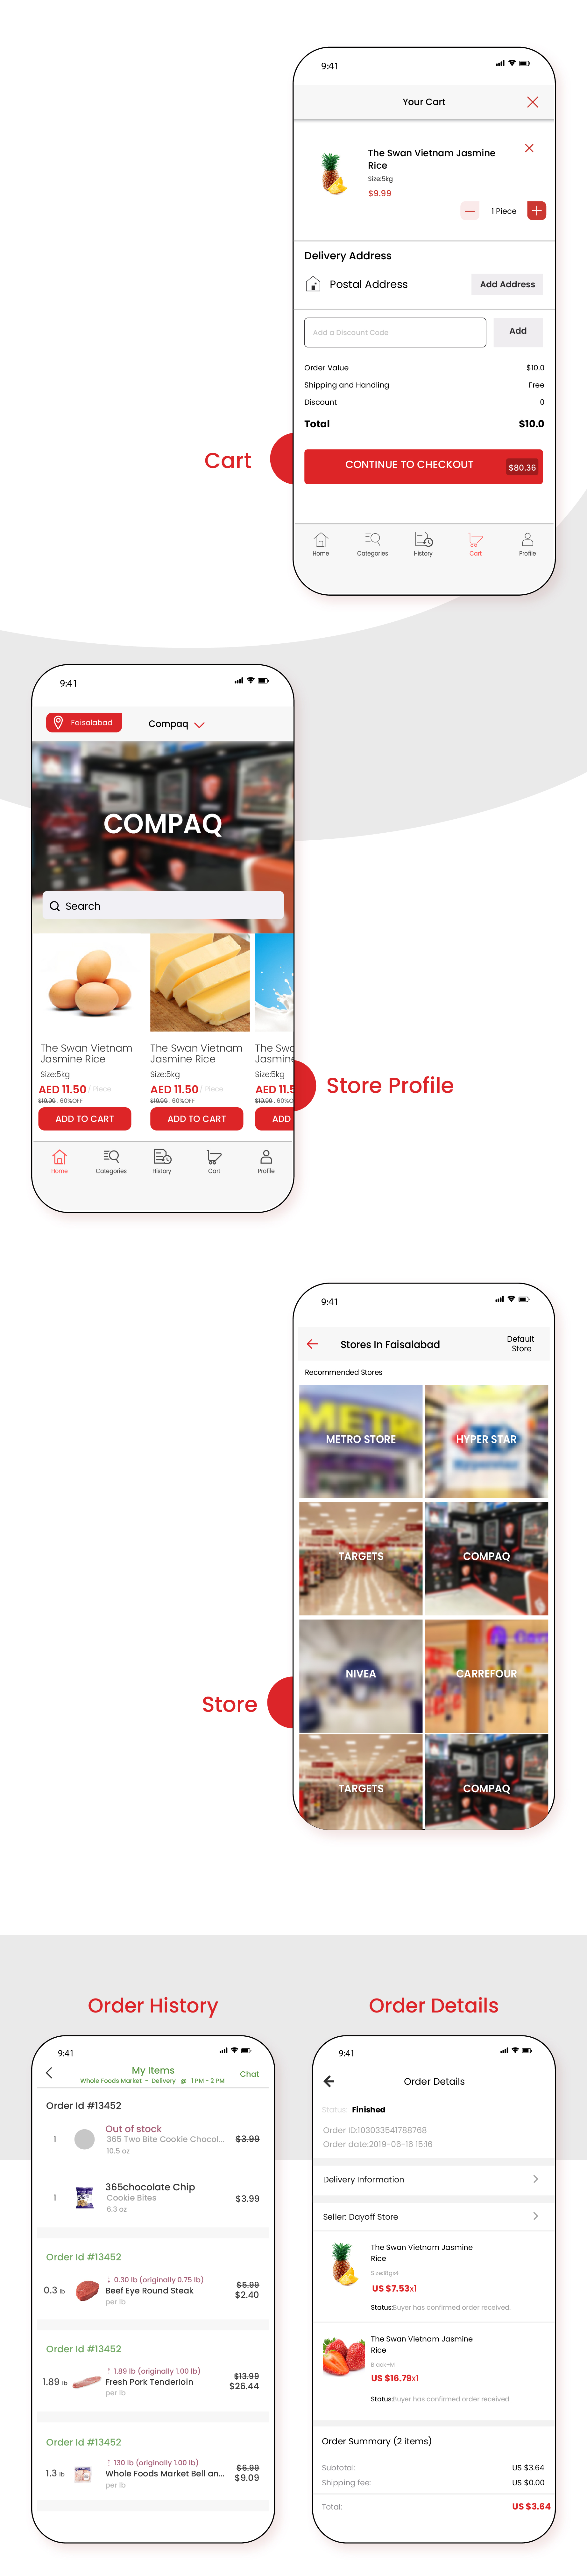 Native Multi Vendor Grocery, Food, Pharmacy, Store Delivery Mobile App with Admin Panel - 3